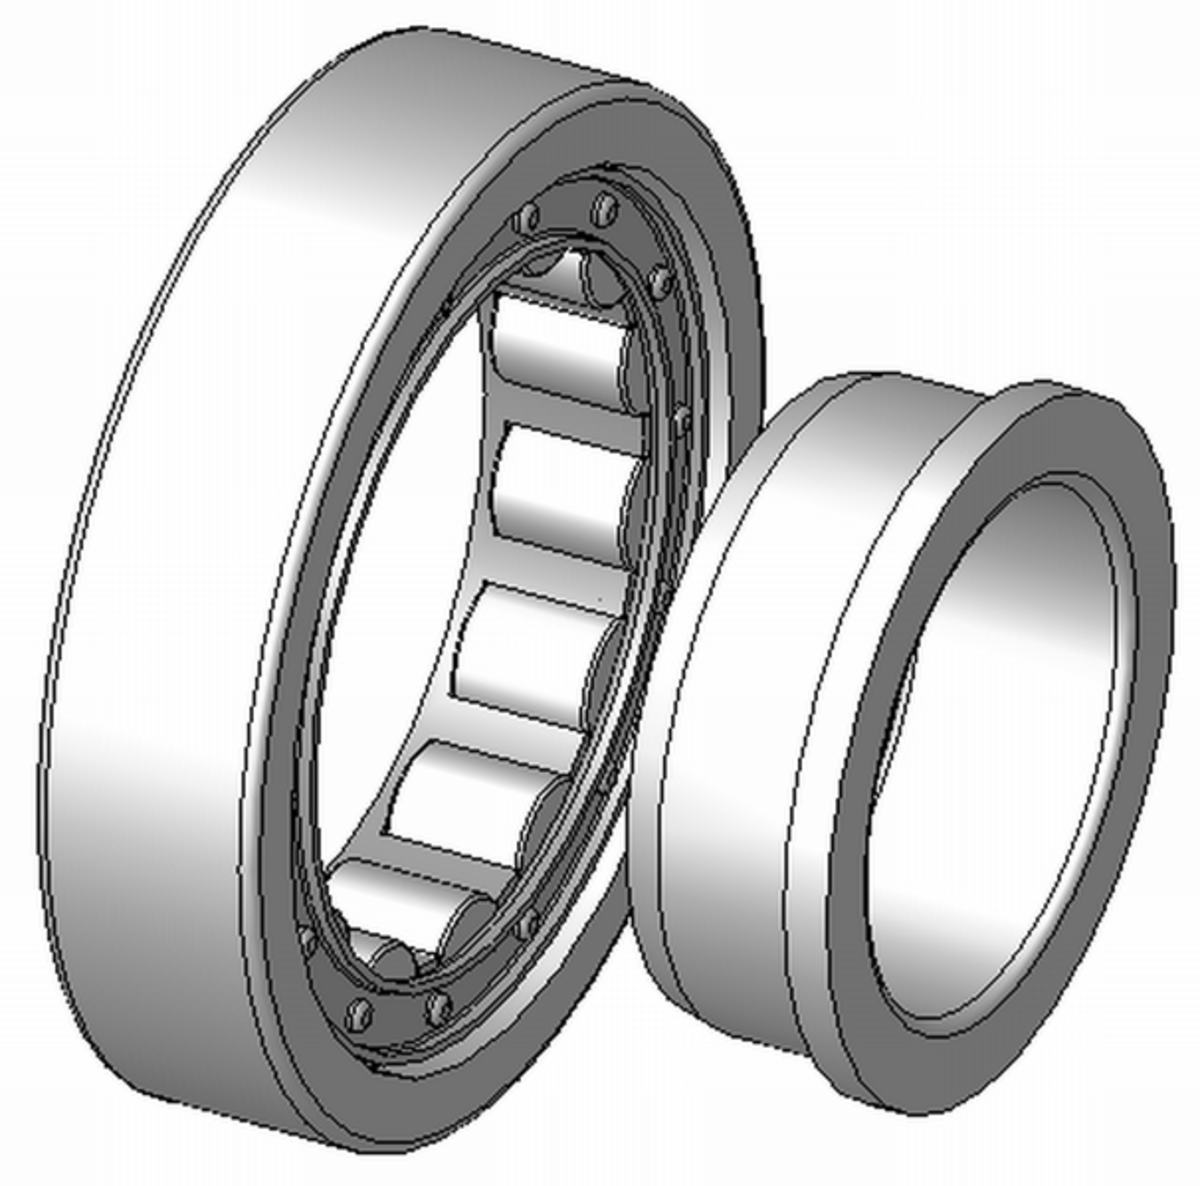 Worn transmission bearings are a frequent cause of transmission noise.